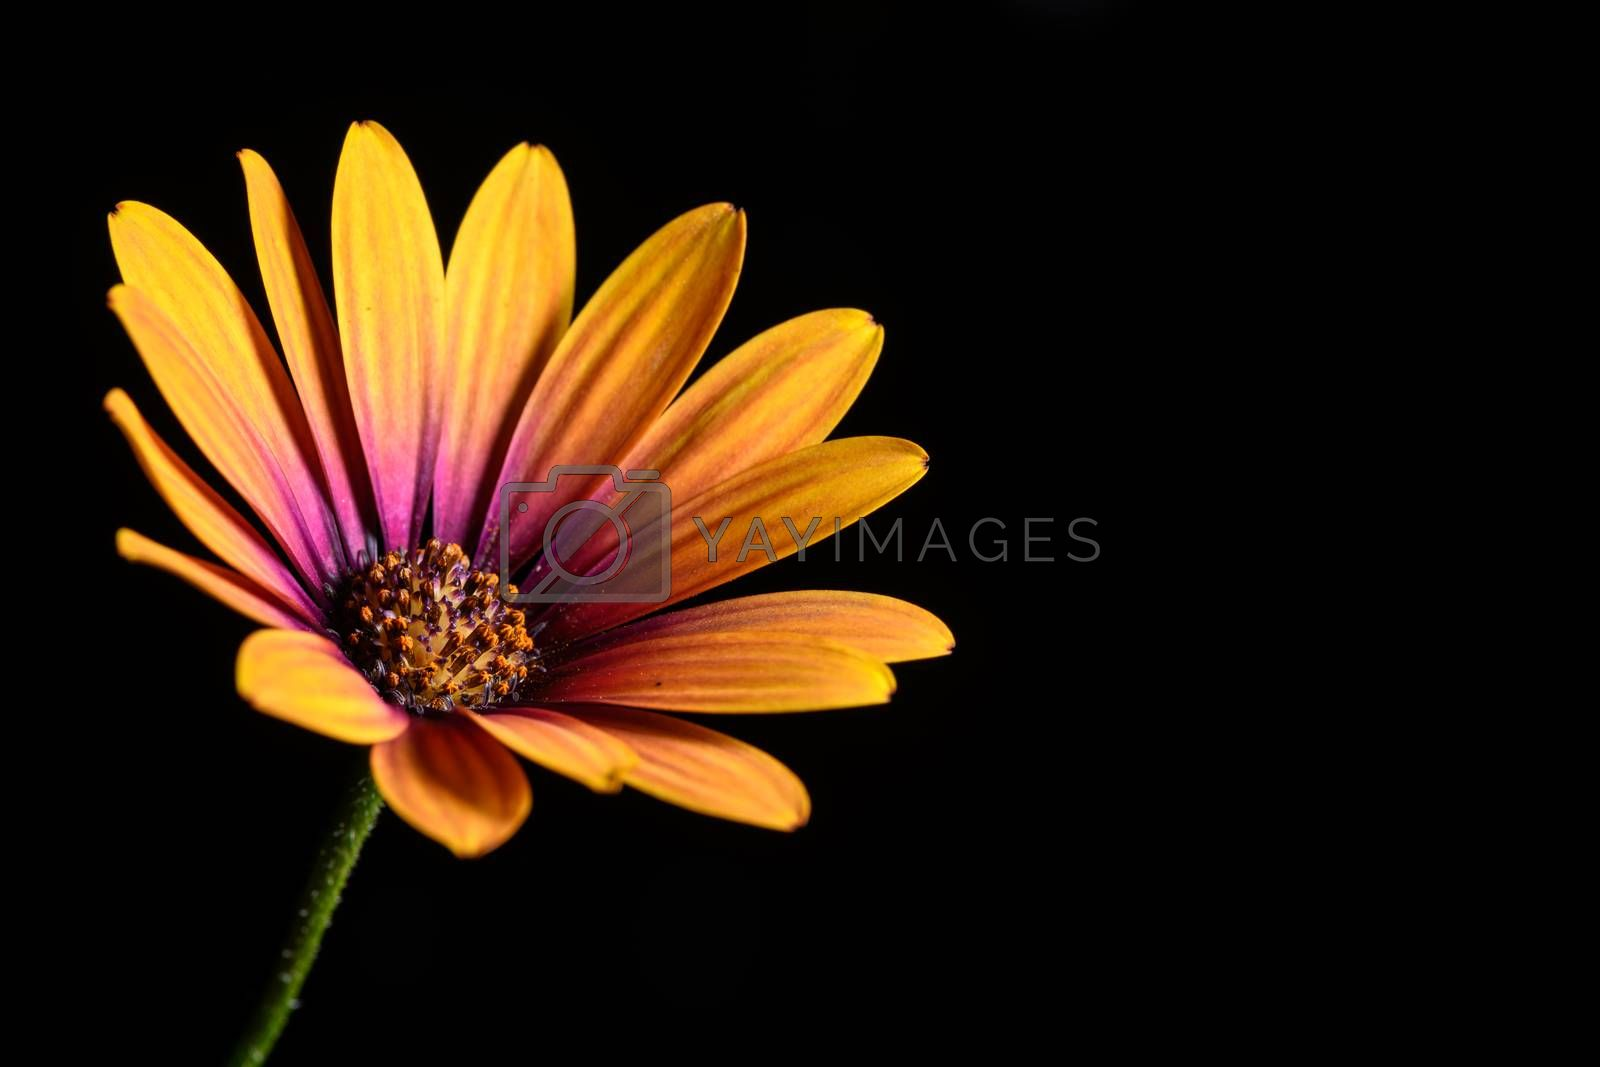 single Daisy flower isolated on a black background